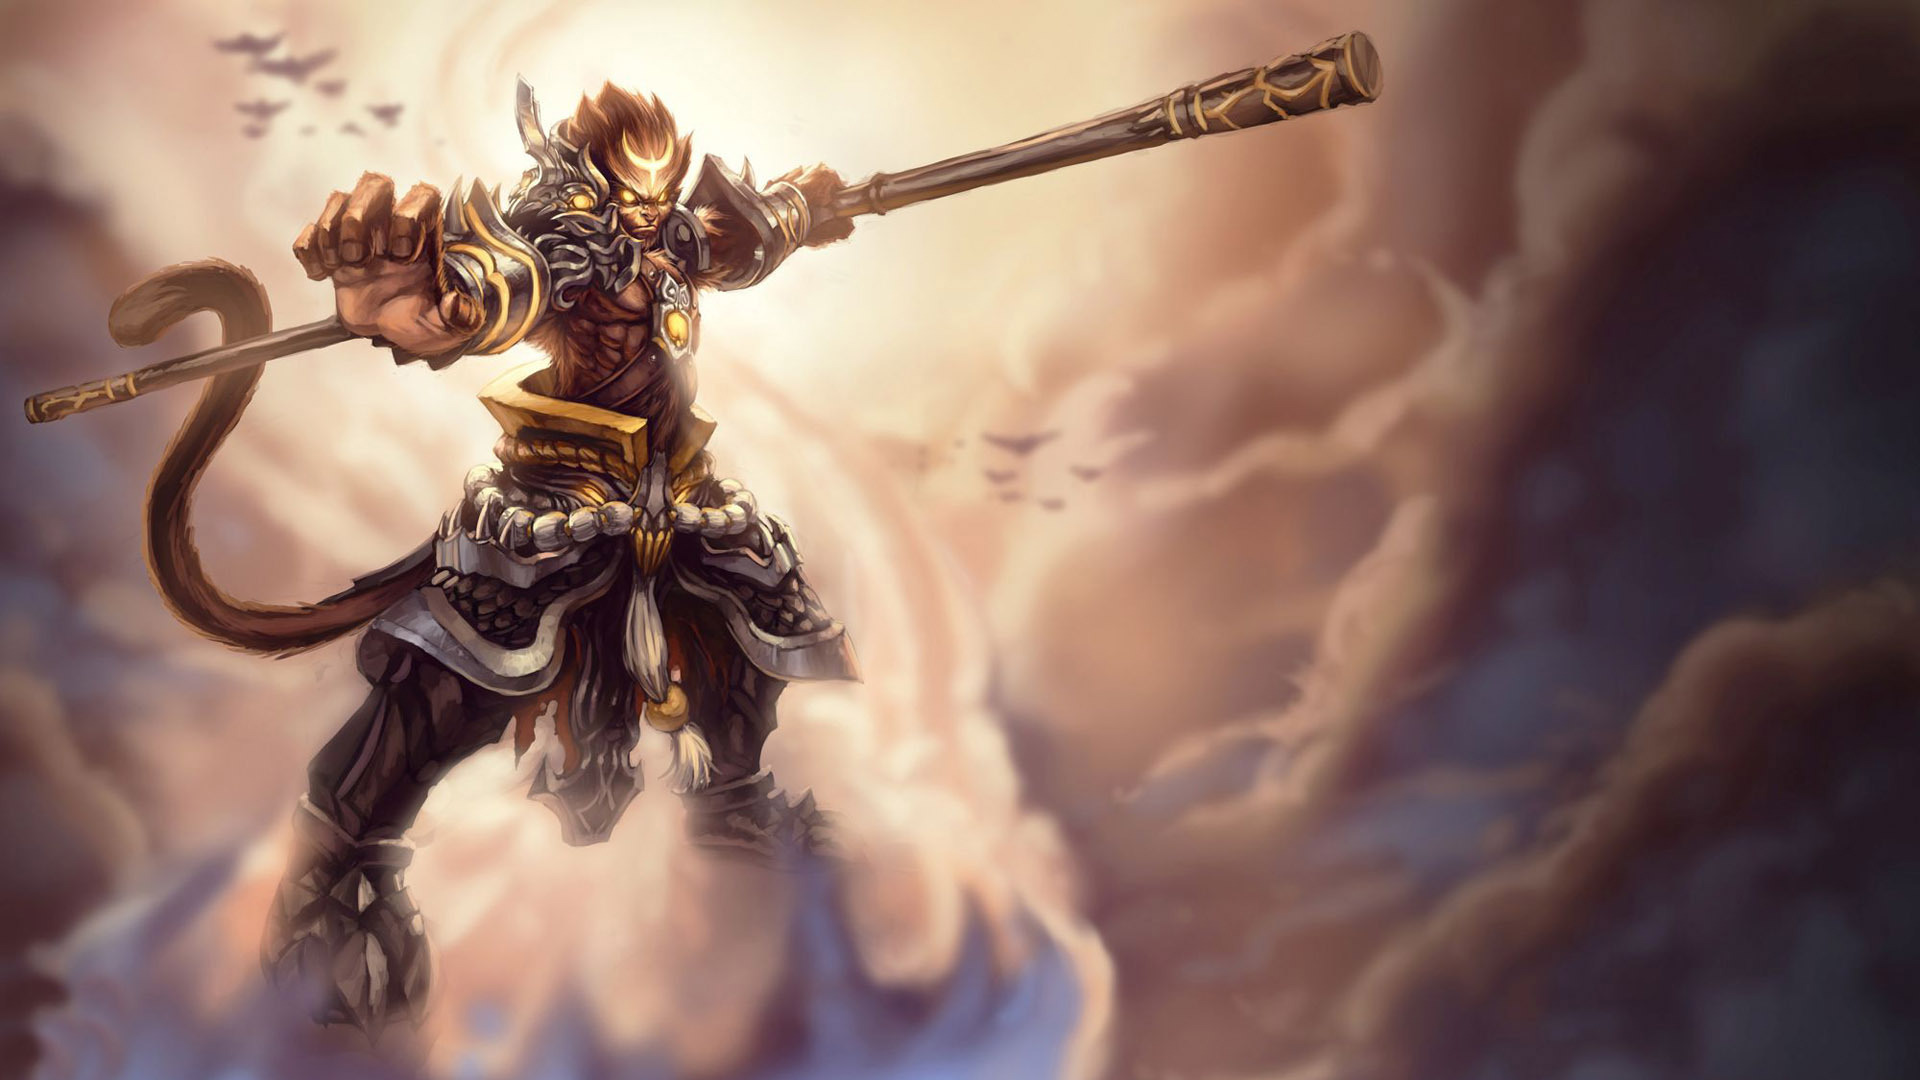 Wukong League Of Legends Wallpaper HD 1920x1080 1